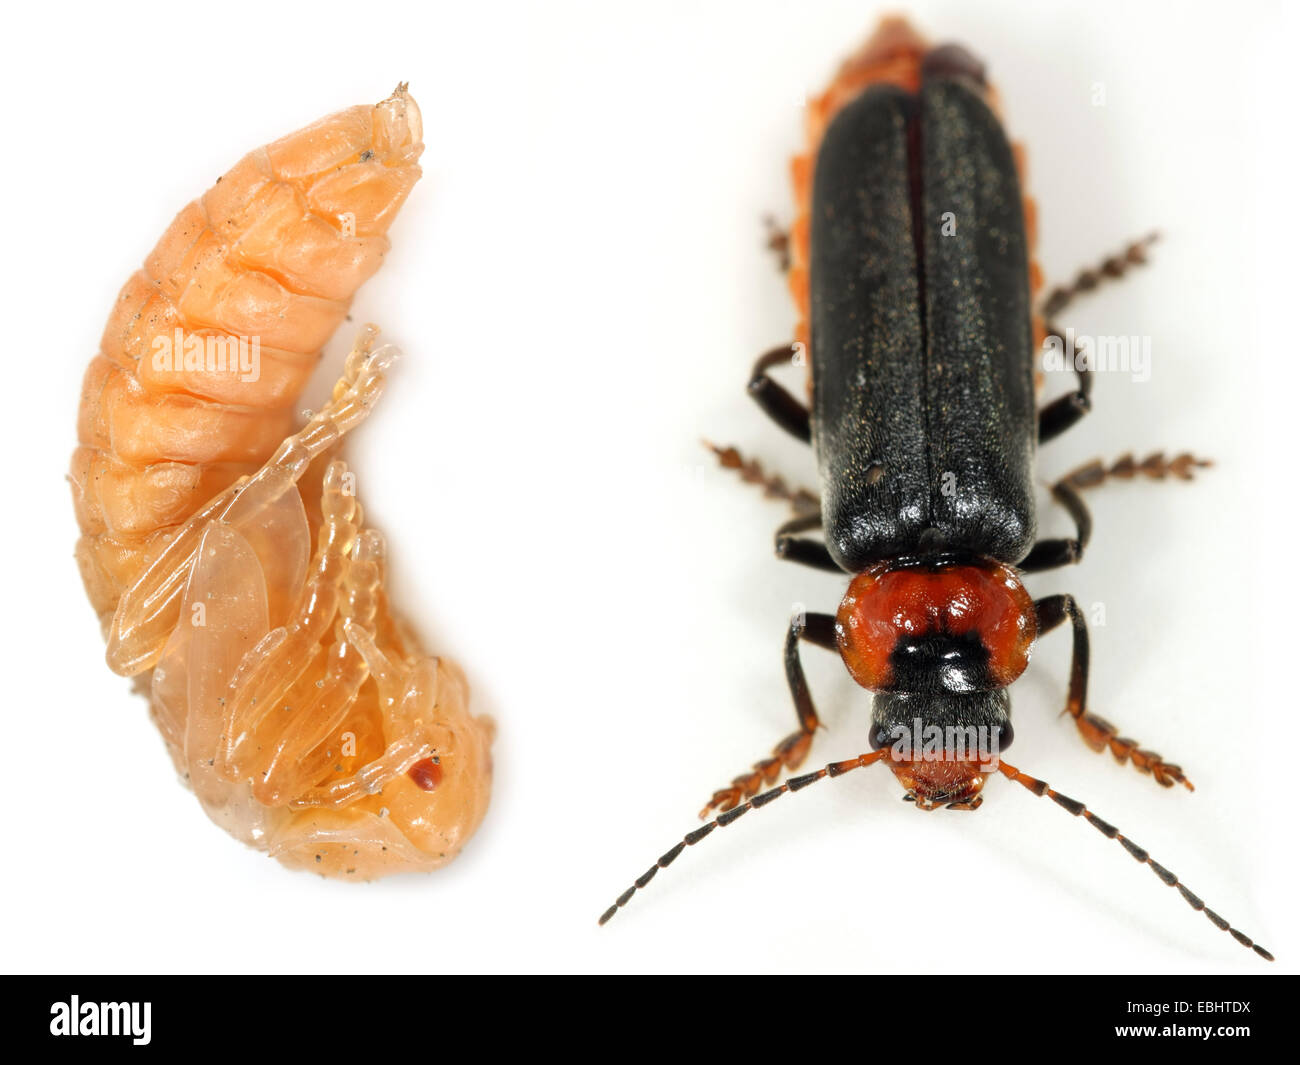 A soldier beetle or leatherwing (Cantharis fusca) as a pupa and in the final imago stage. - Stock Image